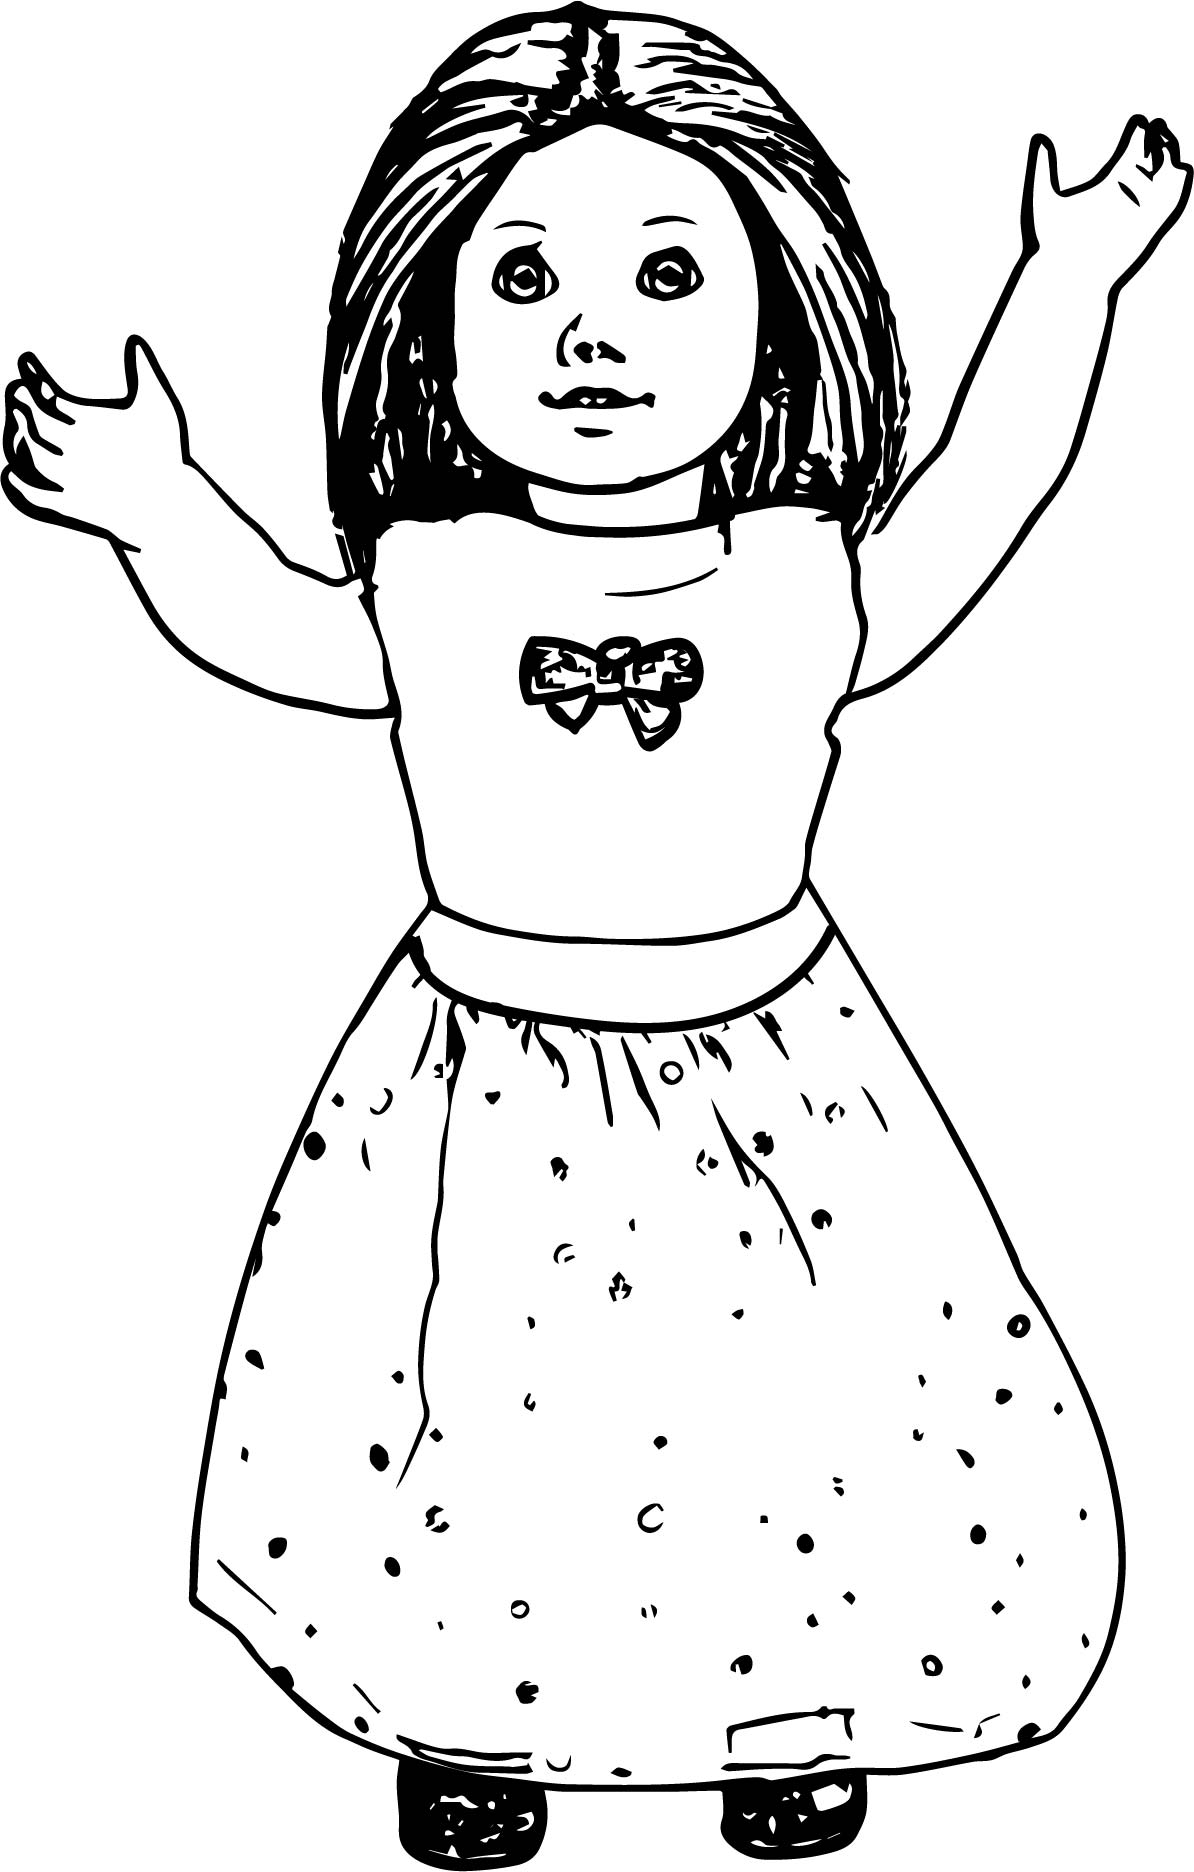 american girl doll coloring page american girl coloring pages  best coloring pages for kids page coloring girl american doll